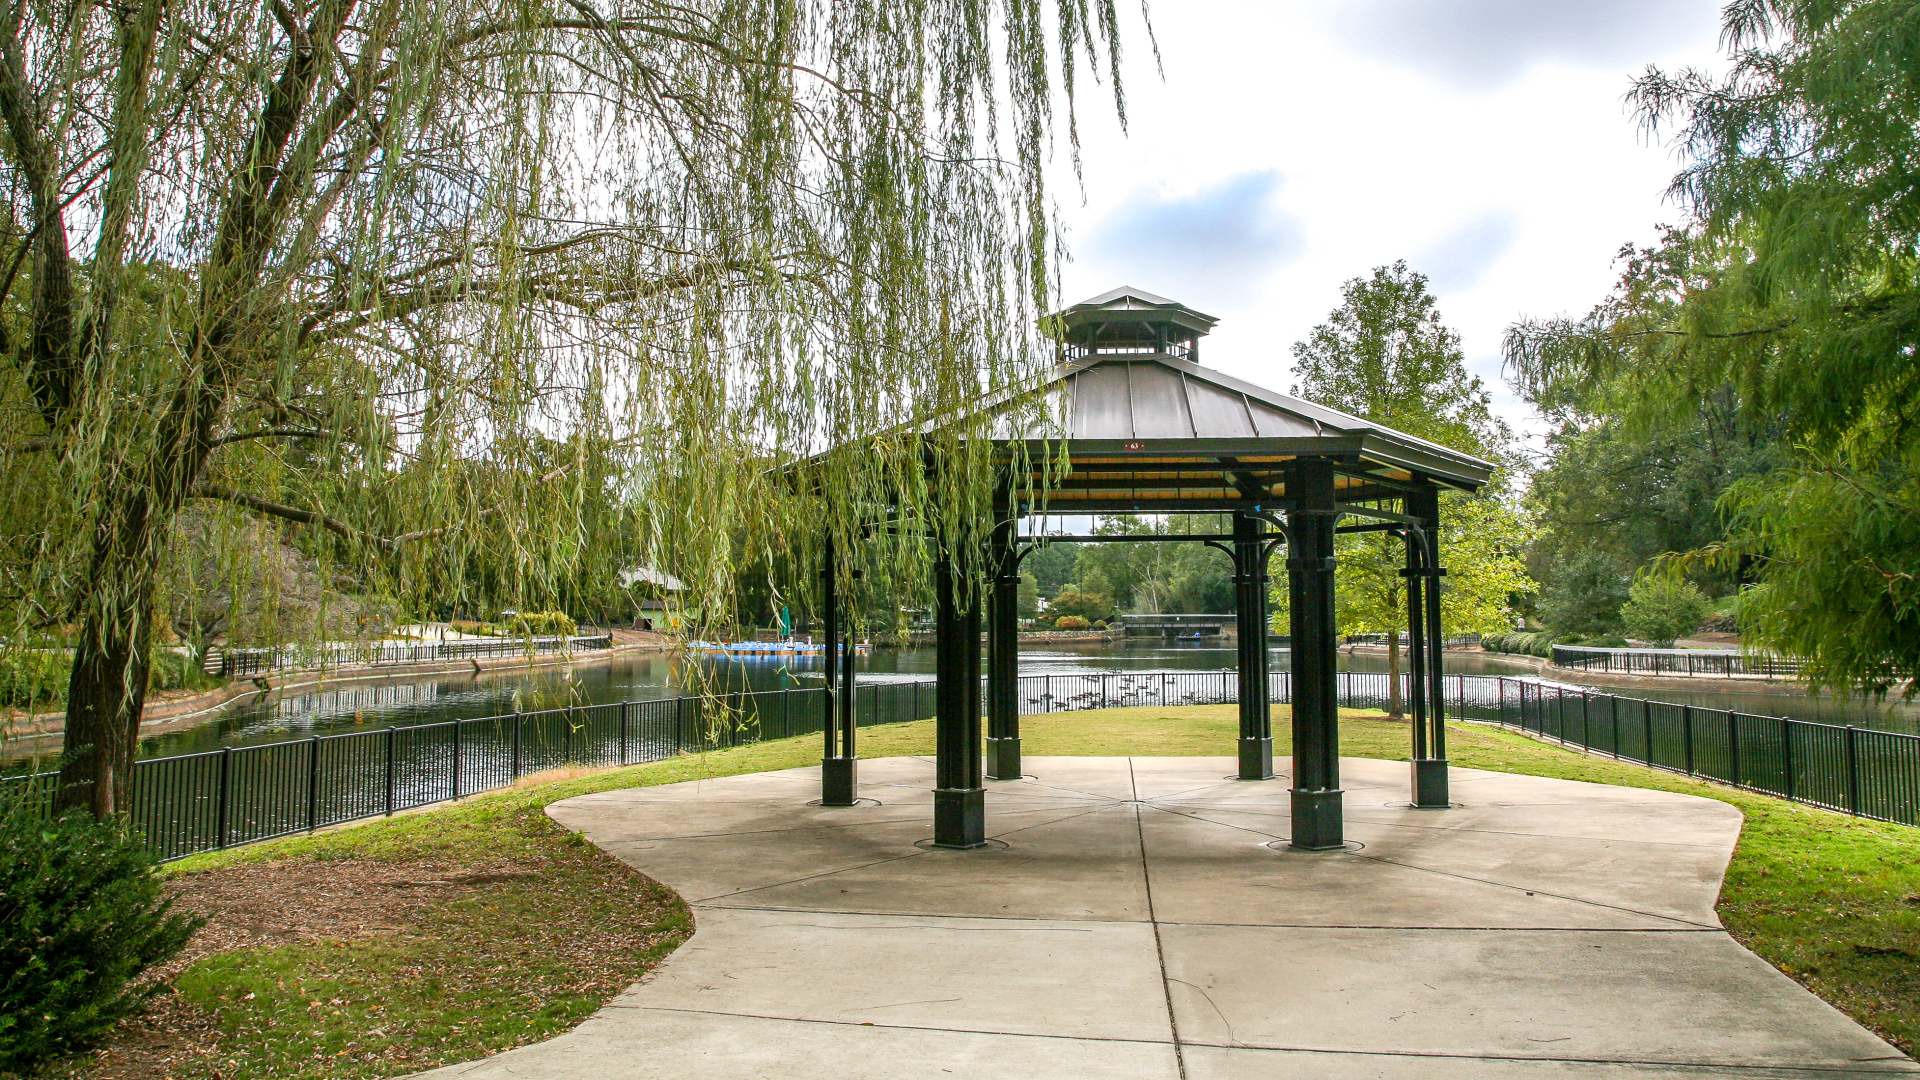 View of gazebo at Pullen Park on island with view of water